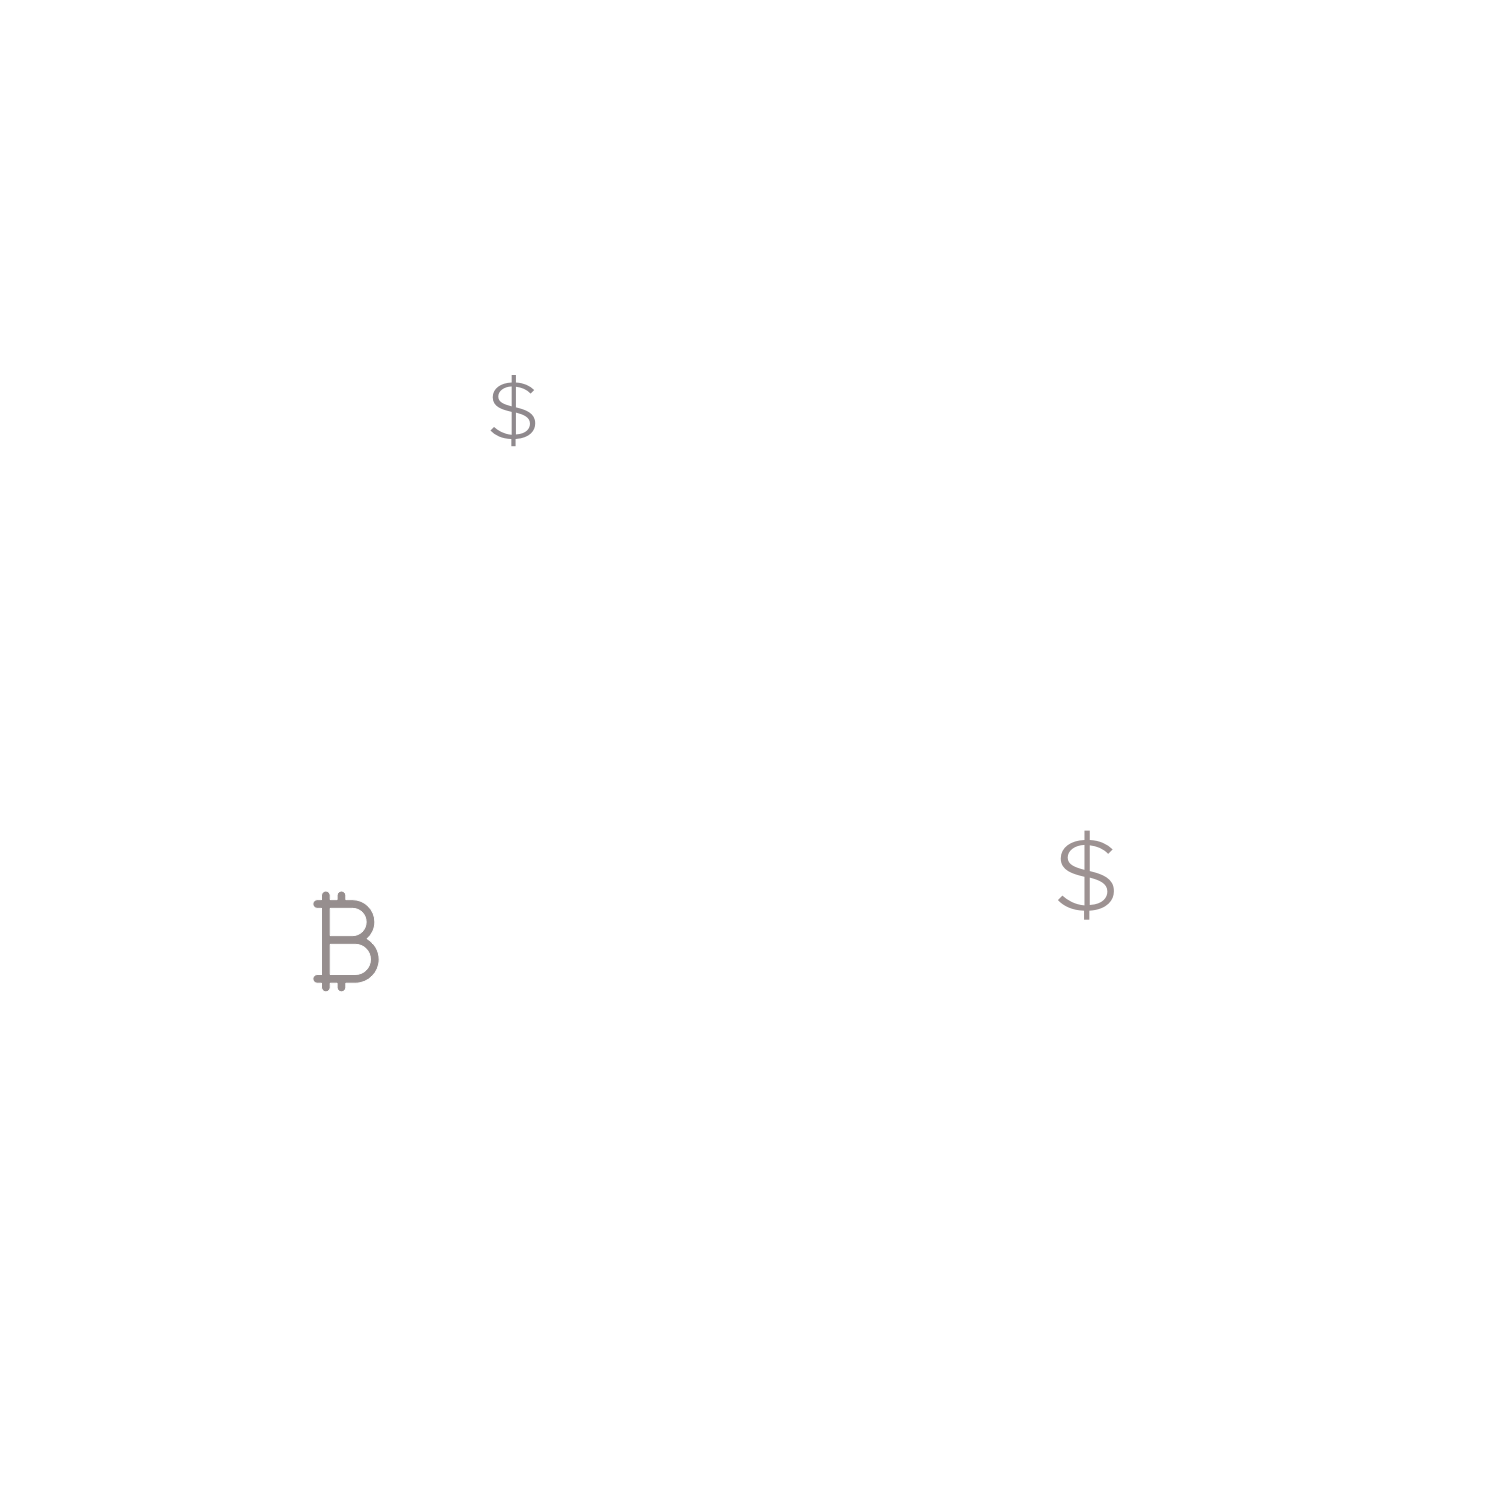 Decentralized Payments - Create real-time payment and currency systems that support unlimited transactions, user privacy, and nanopayments.